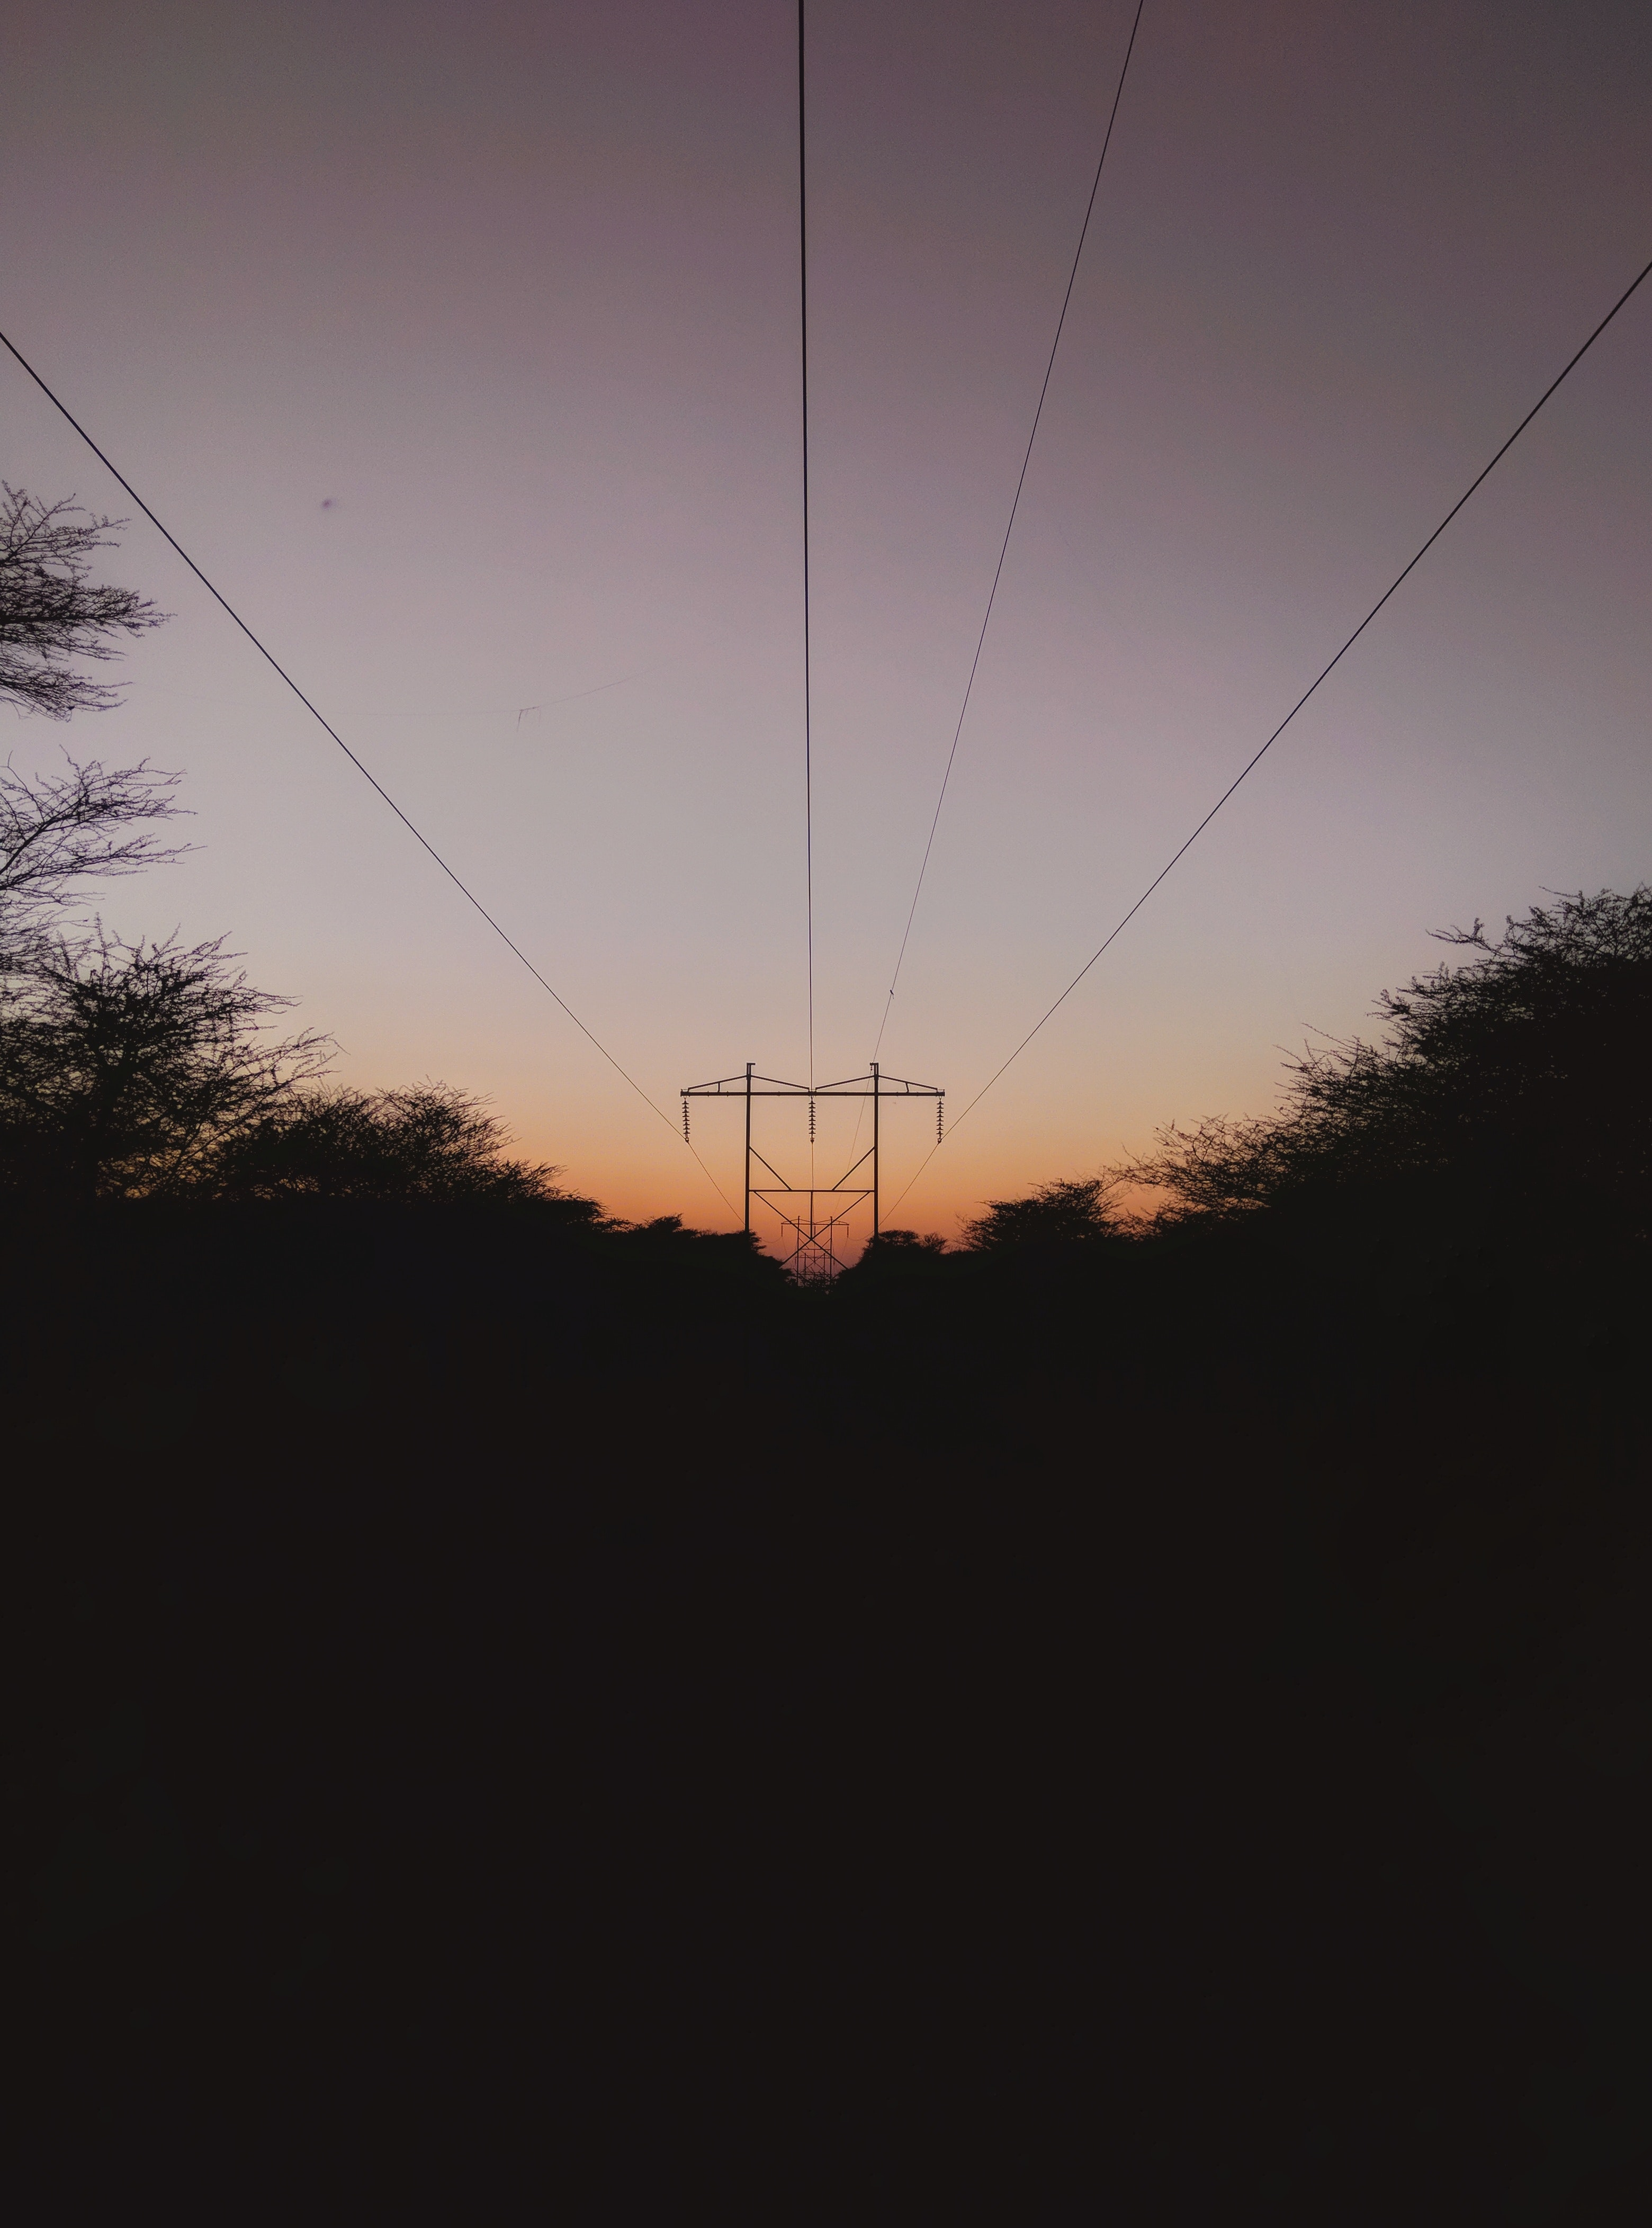 Free stock photo of atmospheric evening, electric current, electric lines